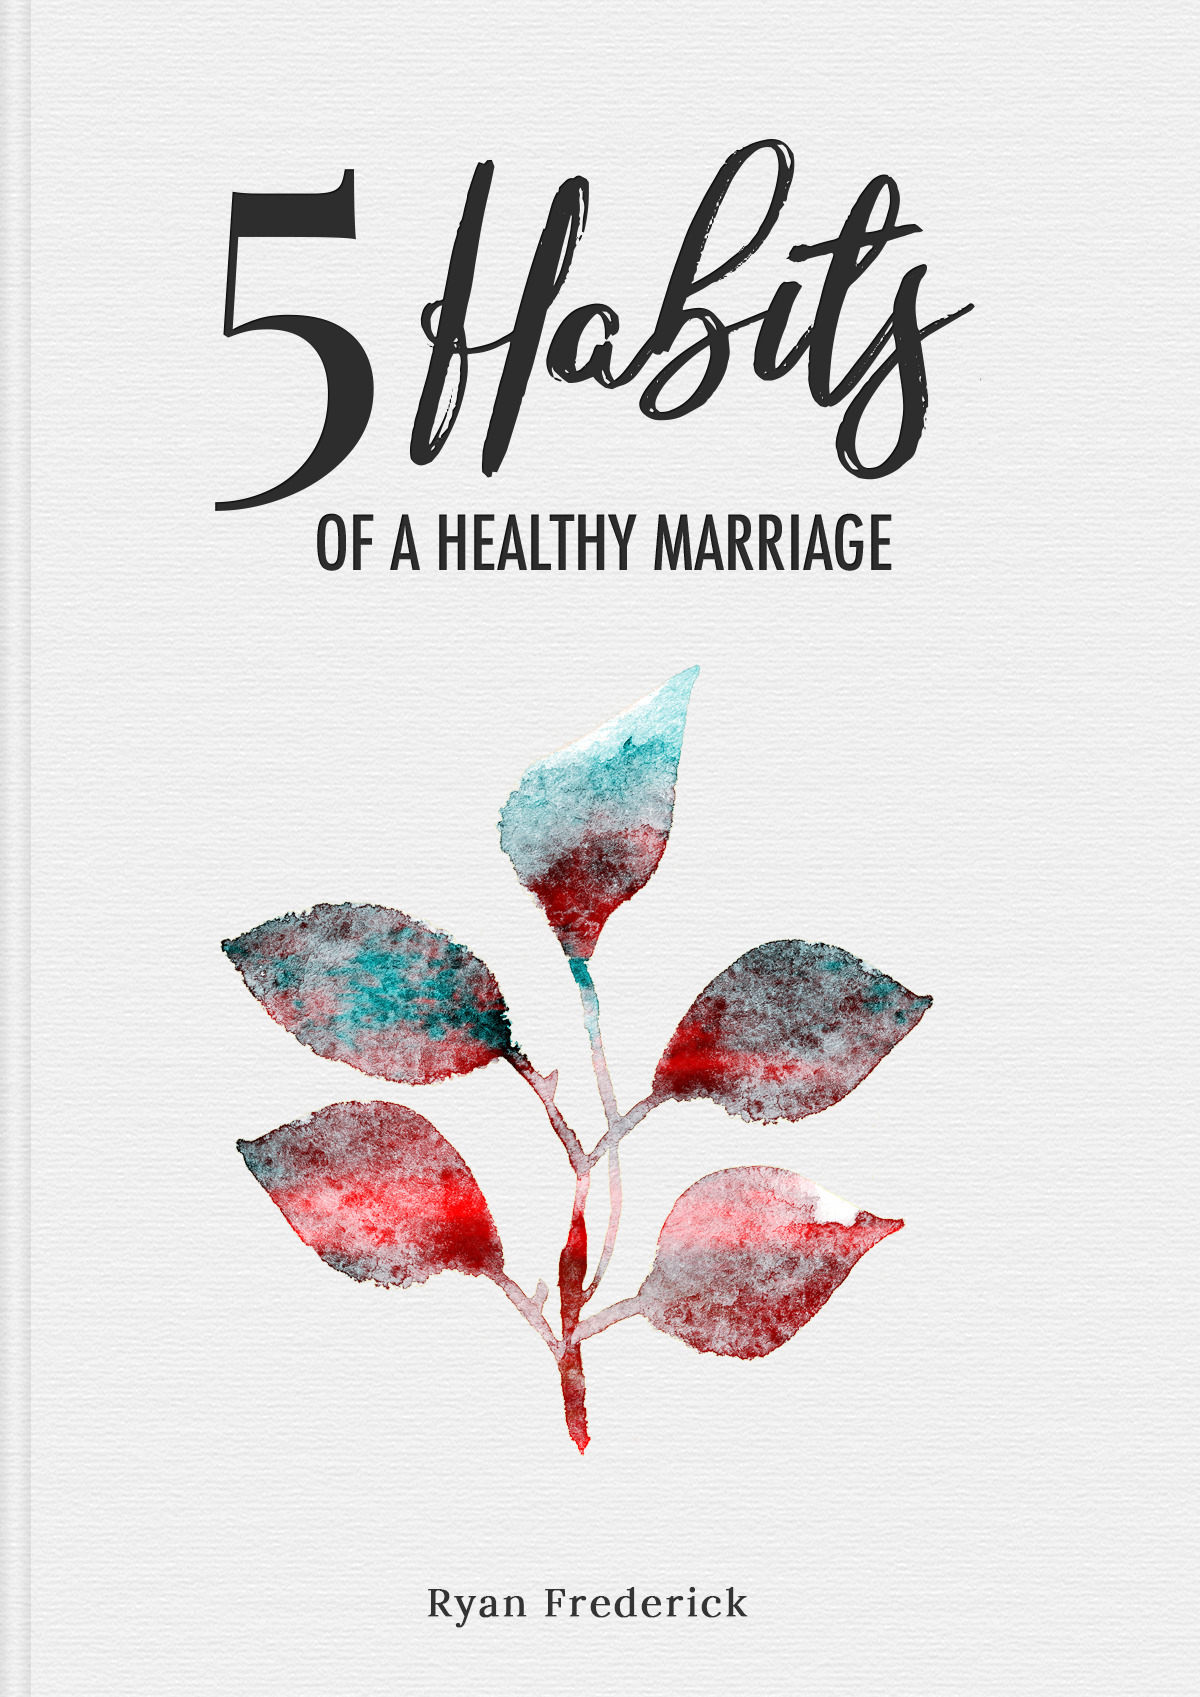 5 habits of a healthy marriage